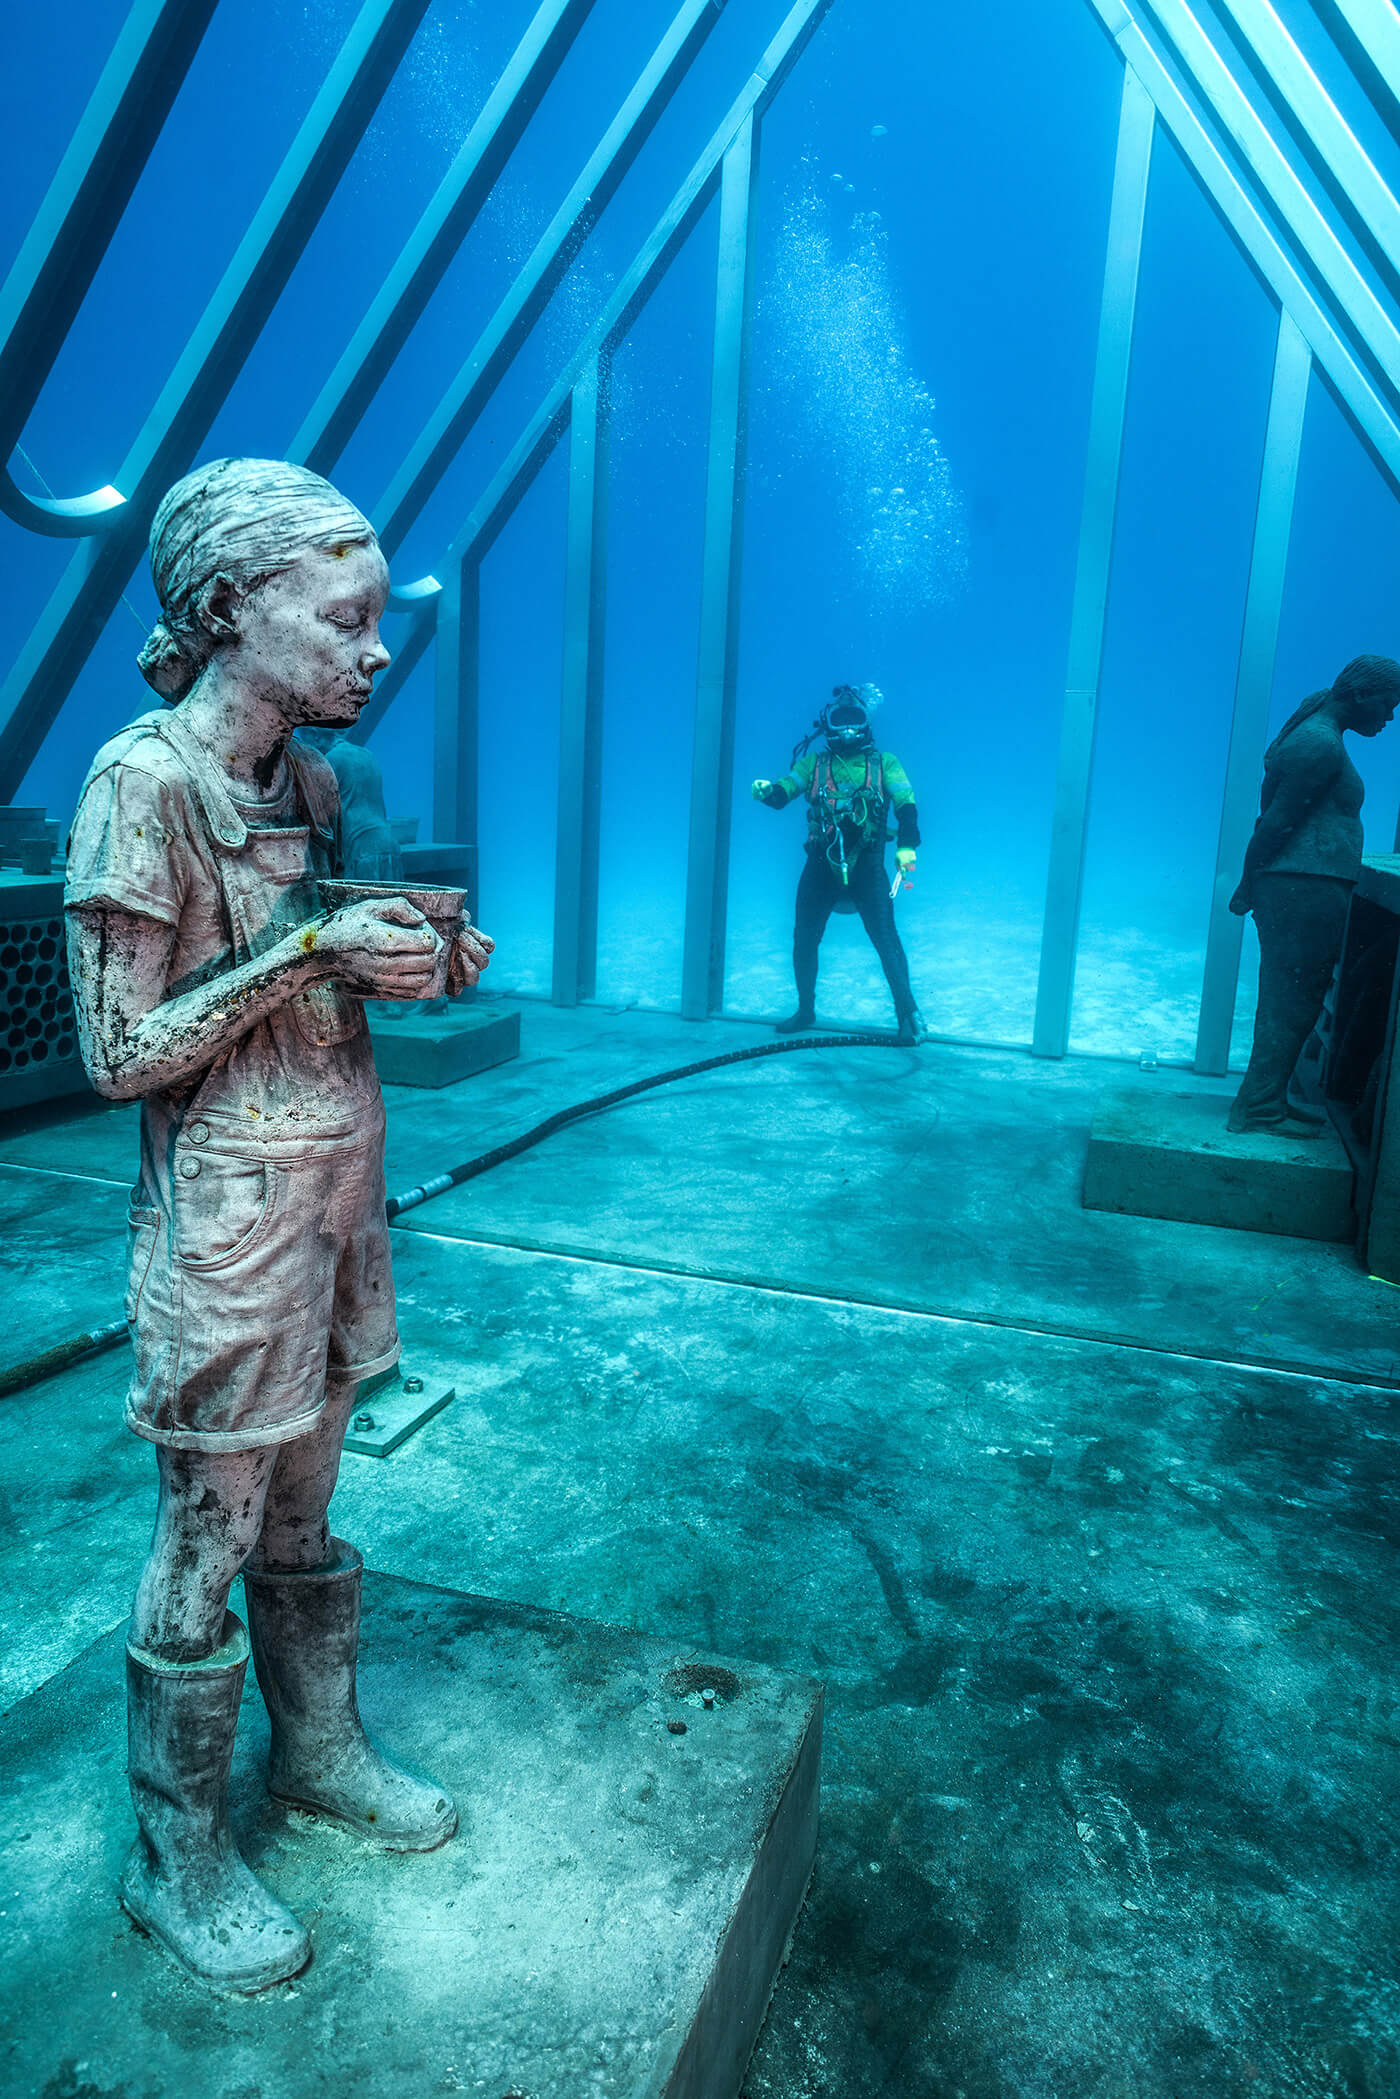 Glimpses of The Coral Greenhouse | Jason deCaires Taylor | STIRworld